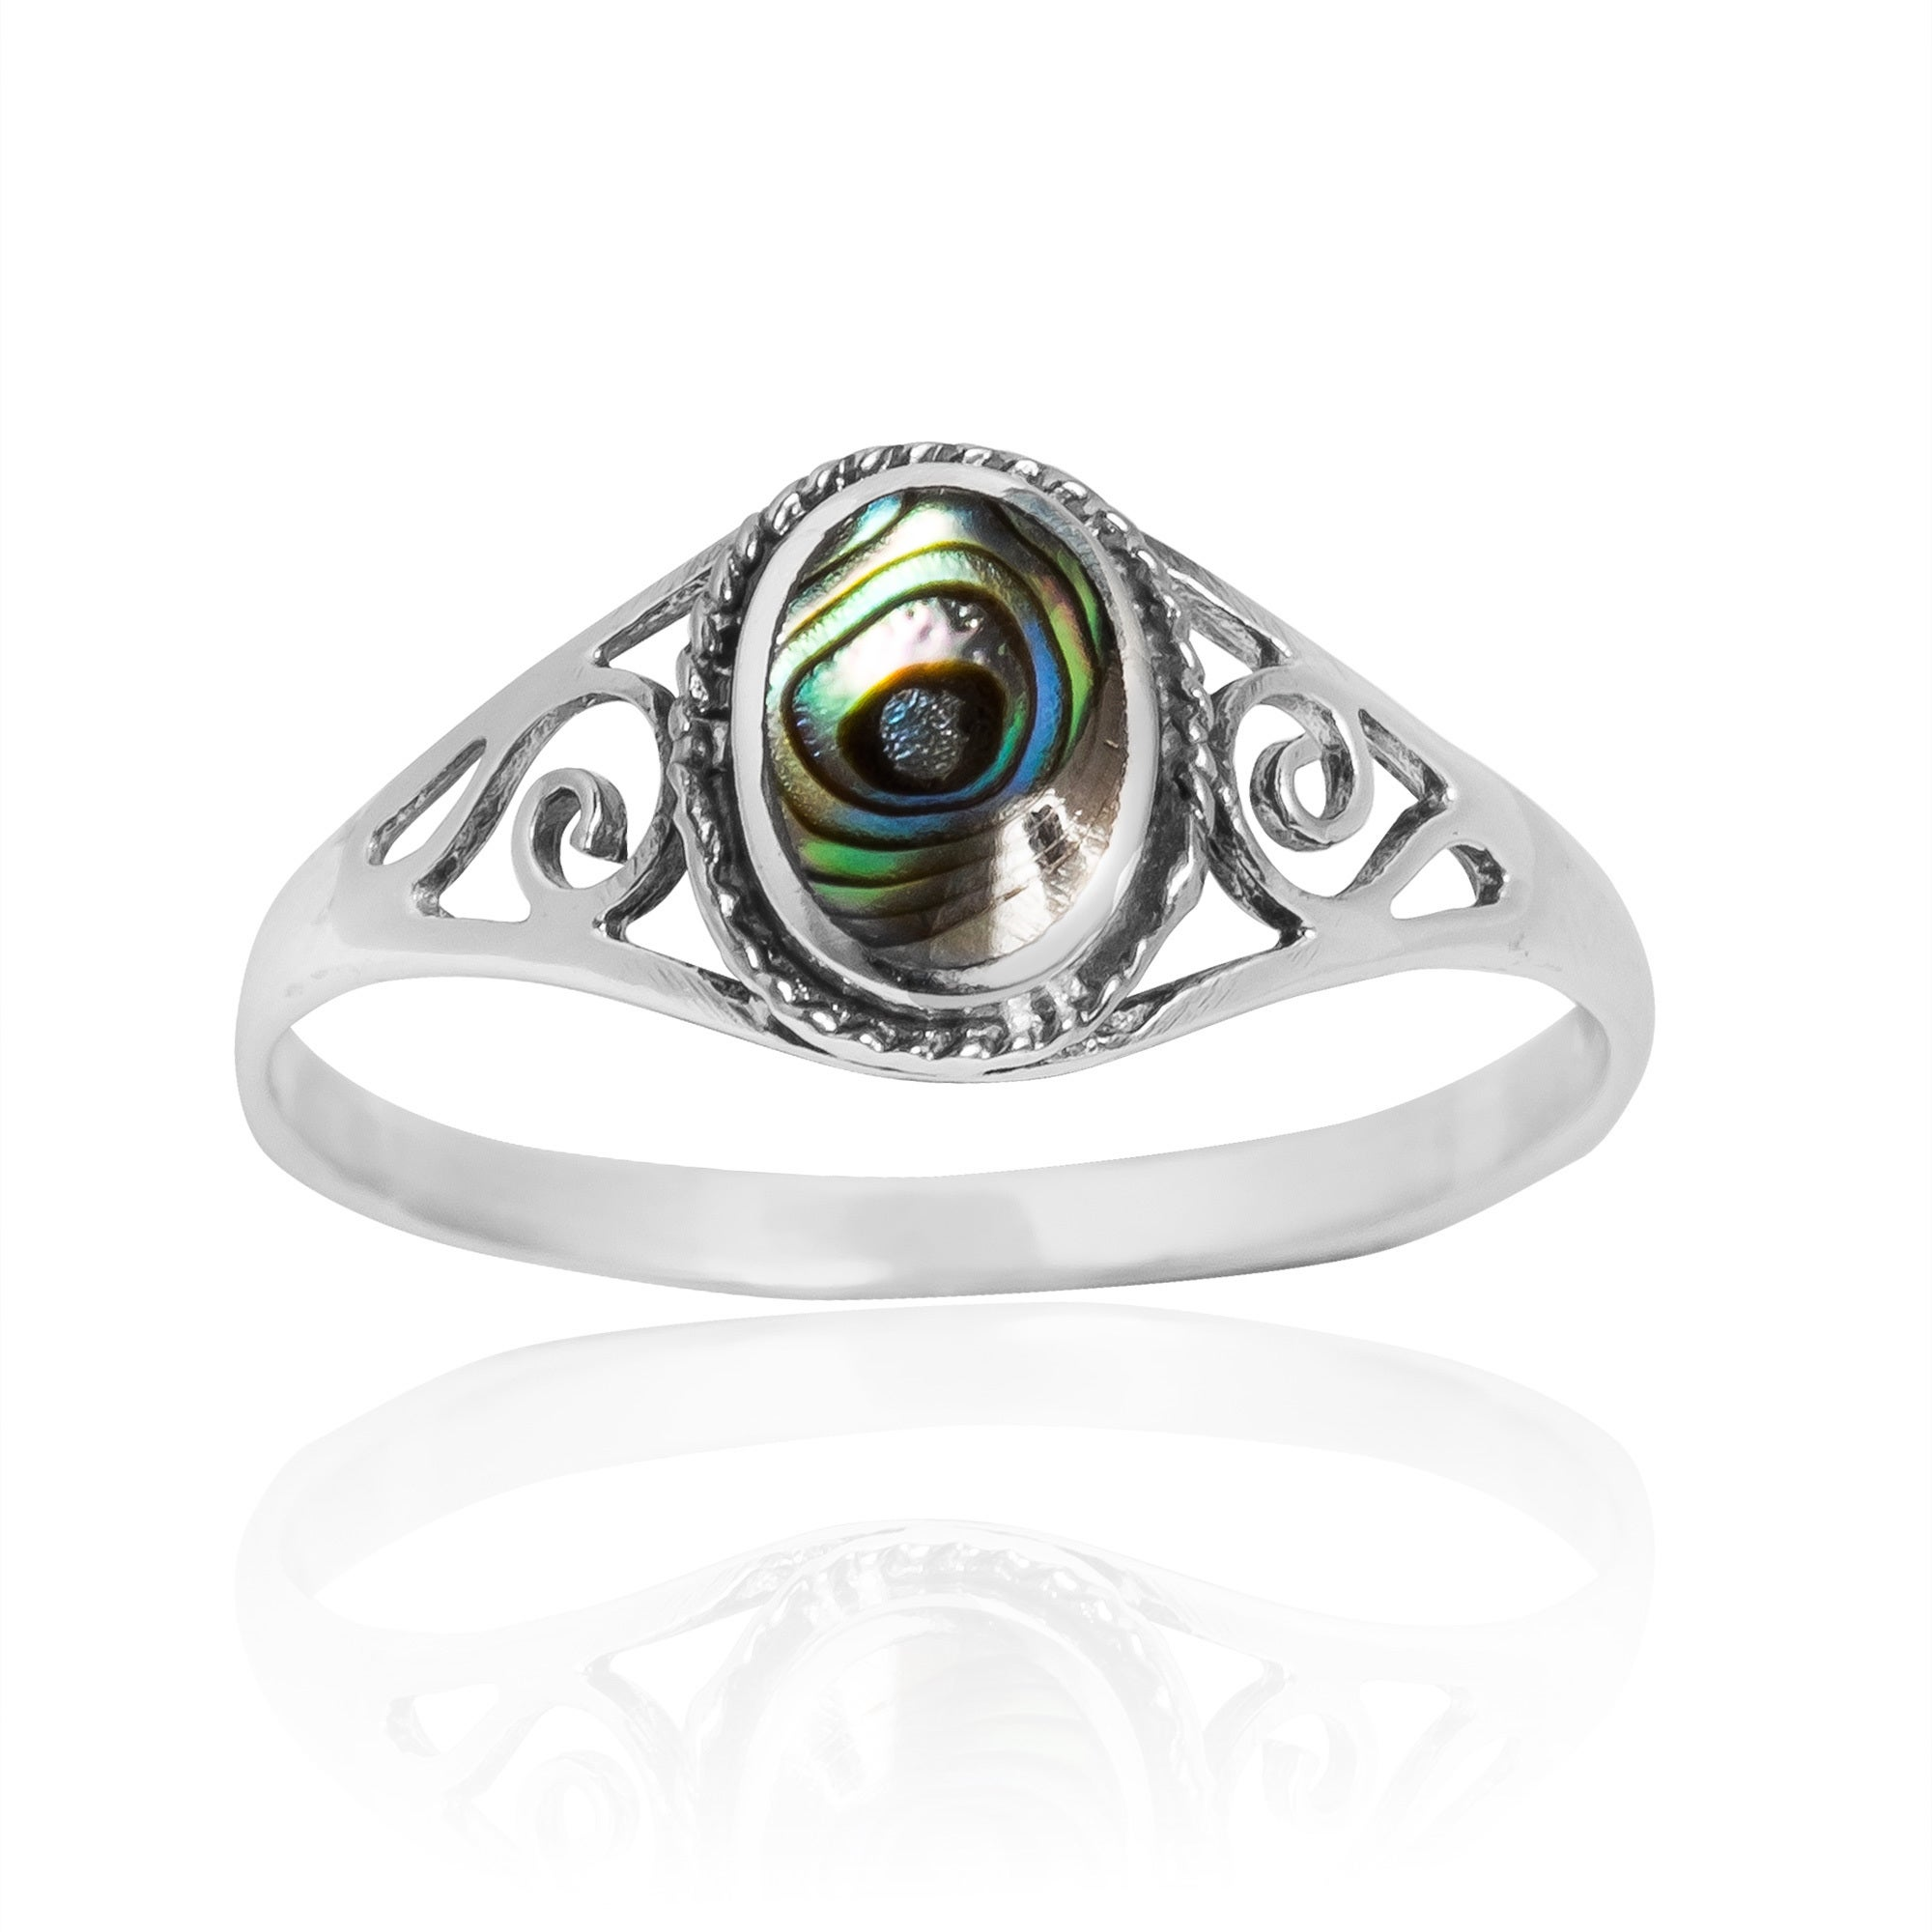 jewelry lika in karat fine bezel sterling set silver oxidized yellow with rings engagement abalone carat by gold behar ring